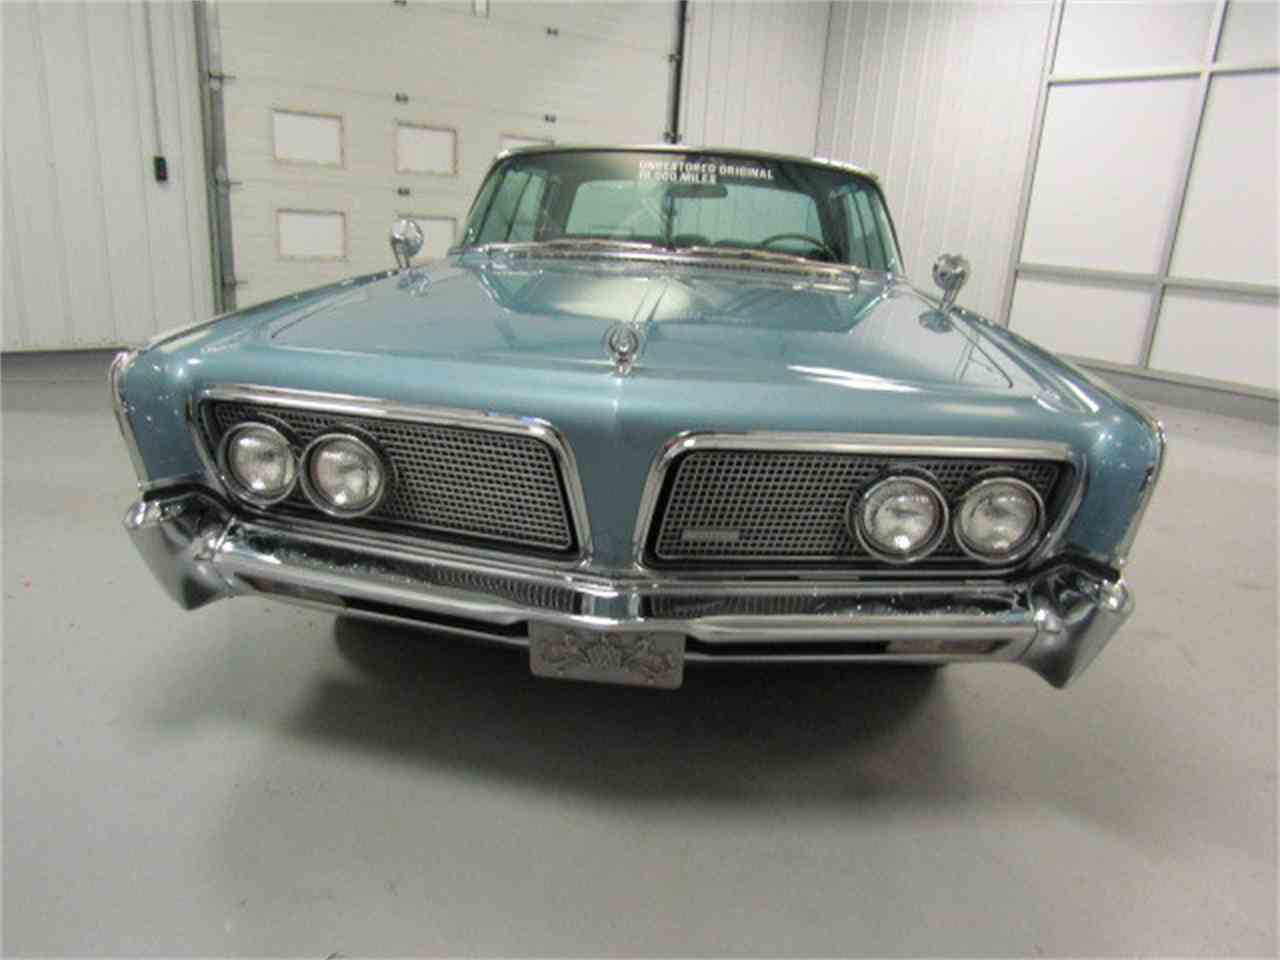 Large Picture of '64 Chrysler Imperial located in Virginia Offered by Duncan Imports & Classic Cars - JLDR